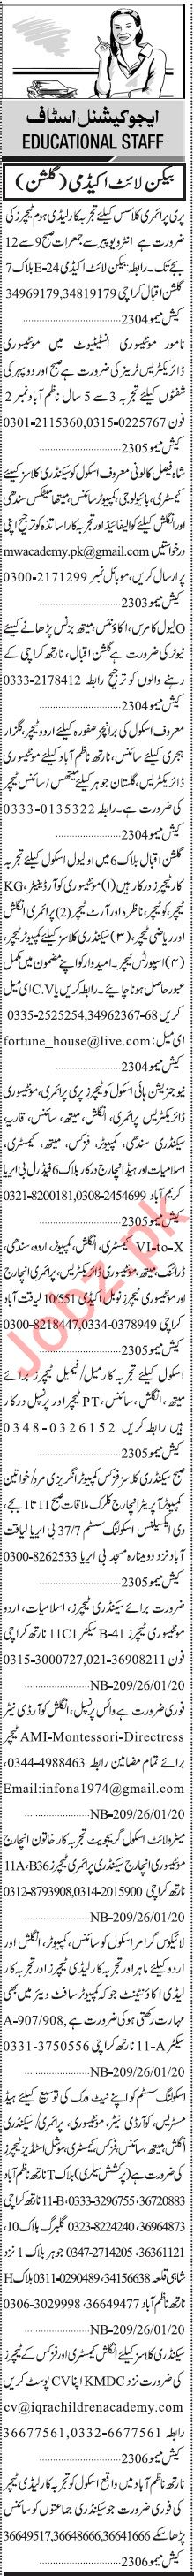 Jang Sunday Classified Ads 26 Jan 2020 for Educational Staff